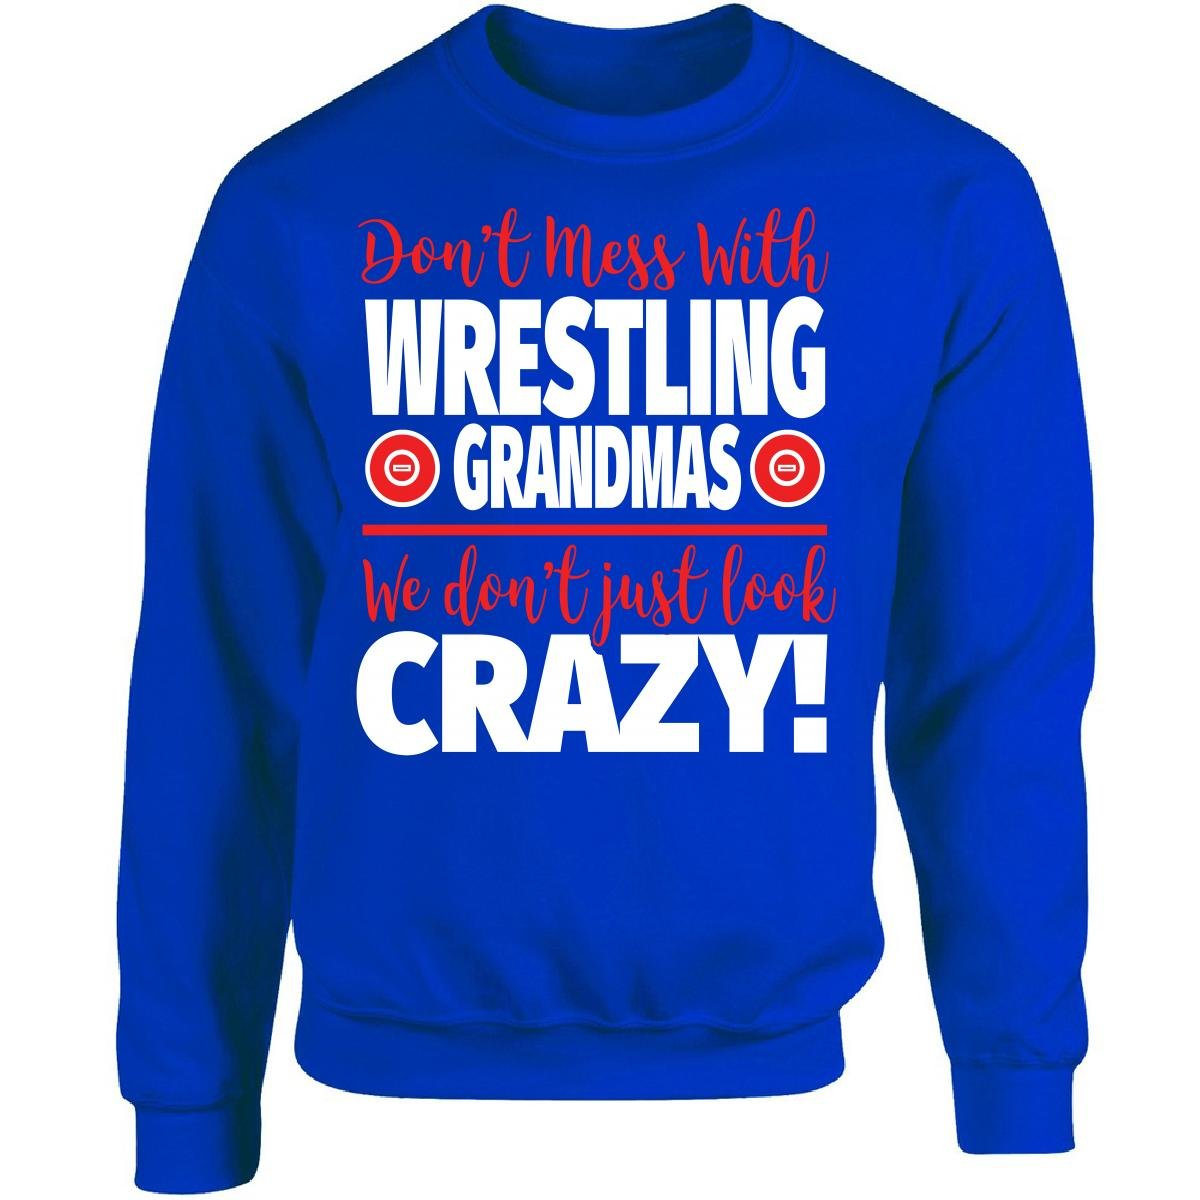 Eternally Gifted Crazy Wrestling Family - Don't Mess With Wrestling Grandmas - Adult Sweatshirt by Eternally Gifted